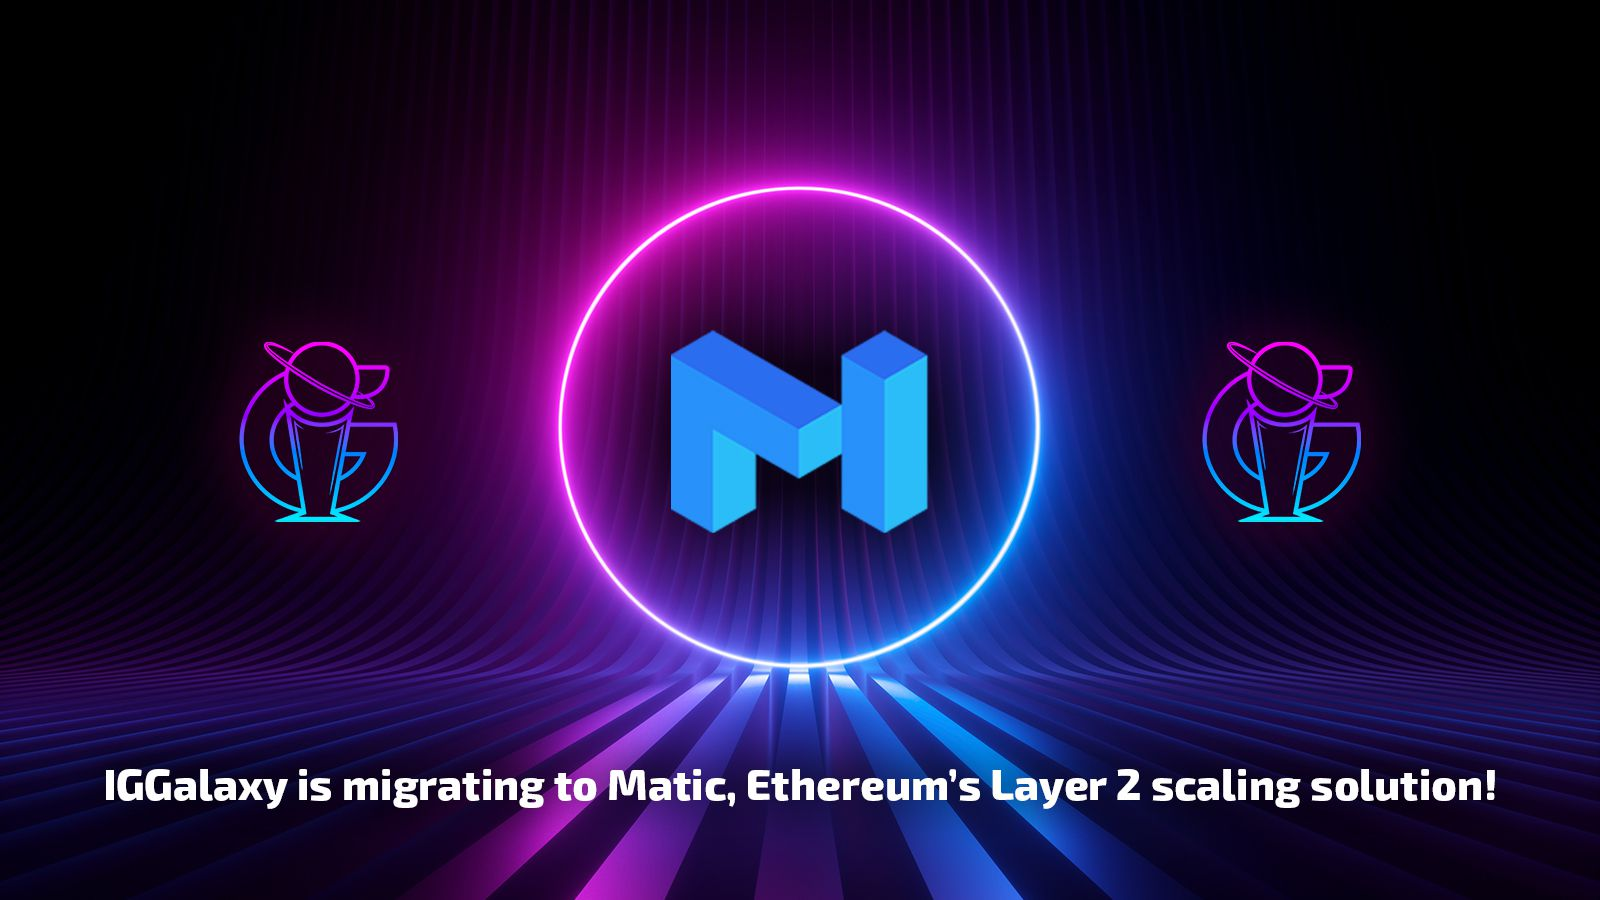 IGGalaxy Migrating from TRON to Matic Network, Ethereum's Layer 2 Scaling Solution